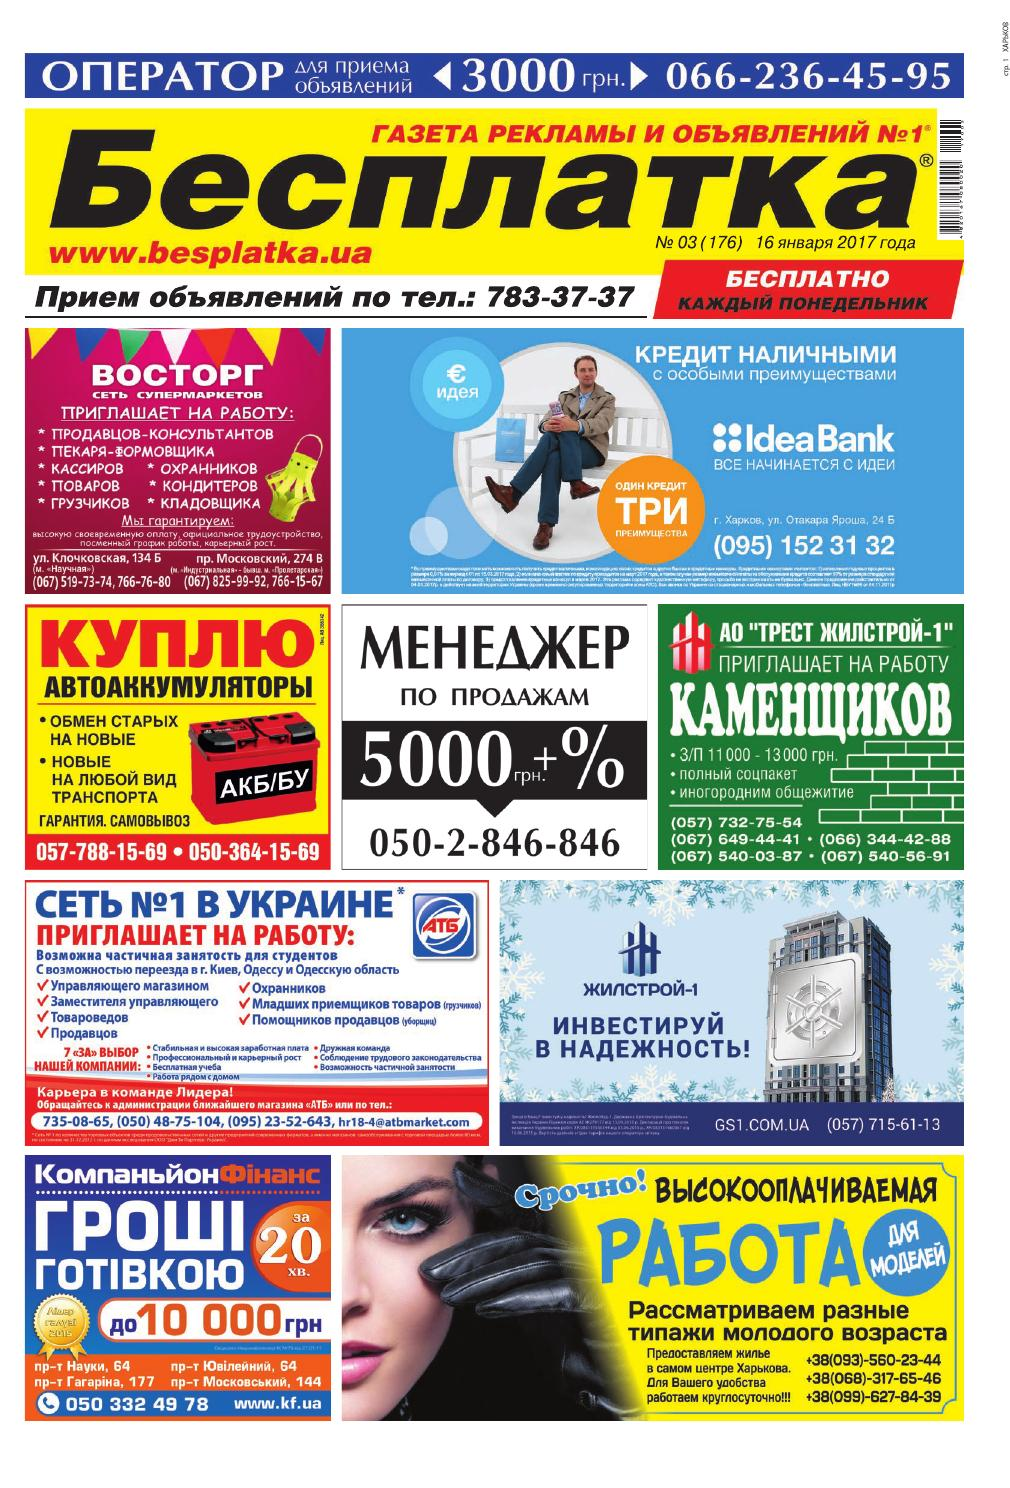 039b9b6c2540 Besplatka  3 Харьков by besplatka ukraine - issuu